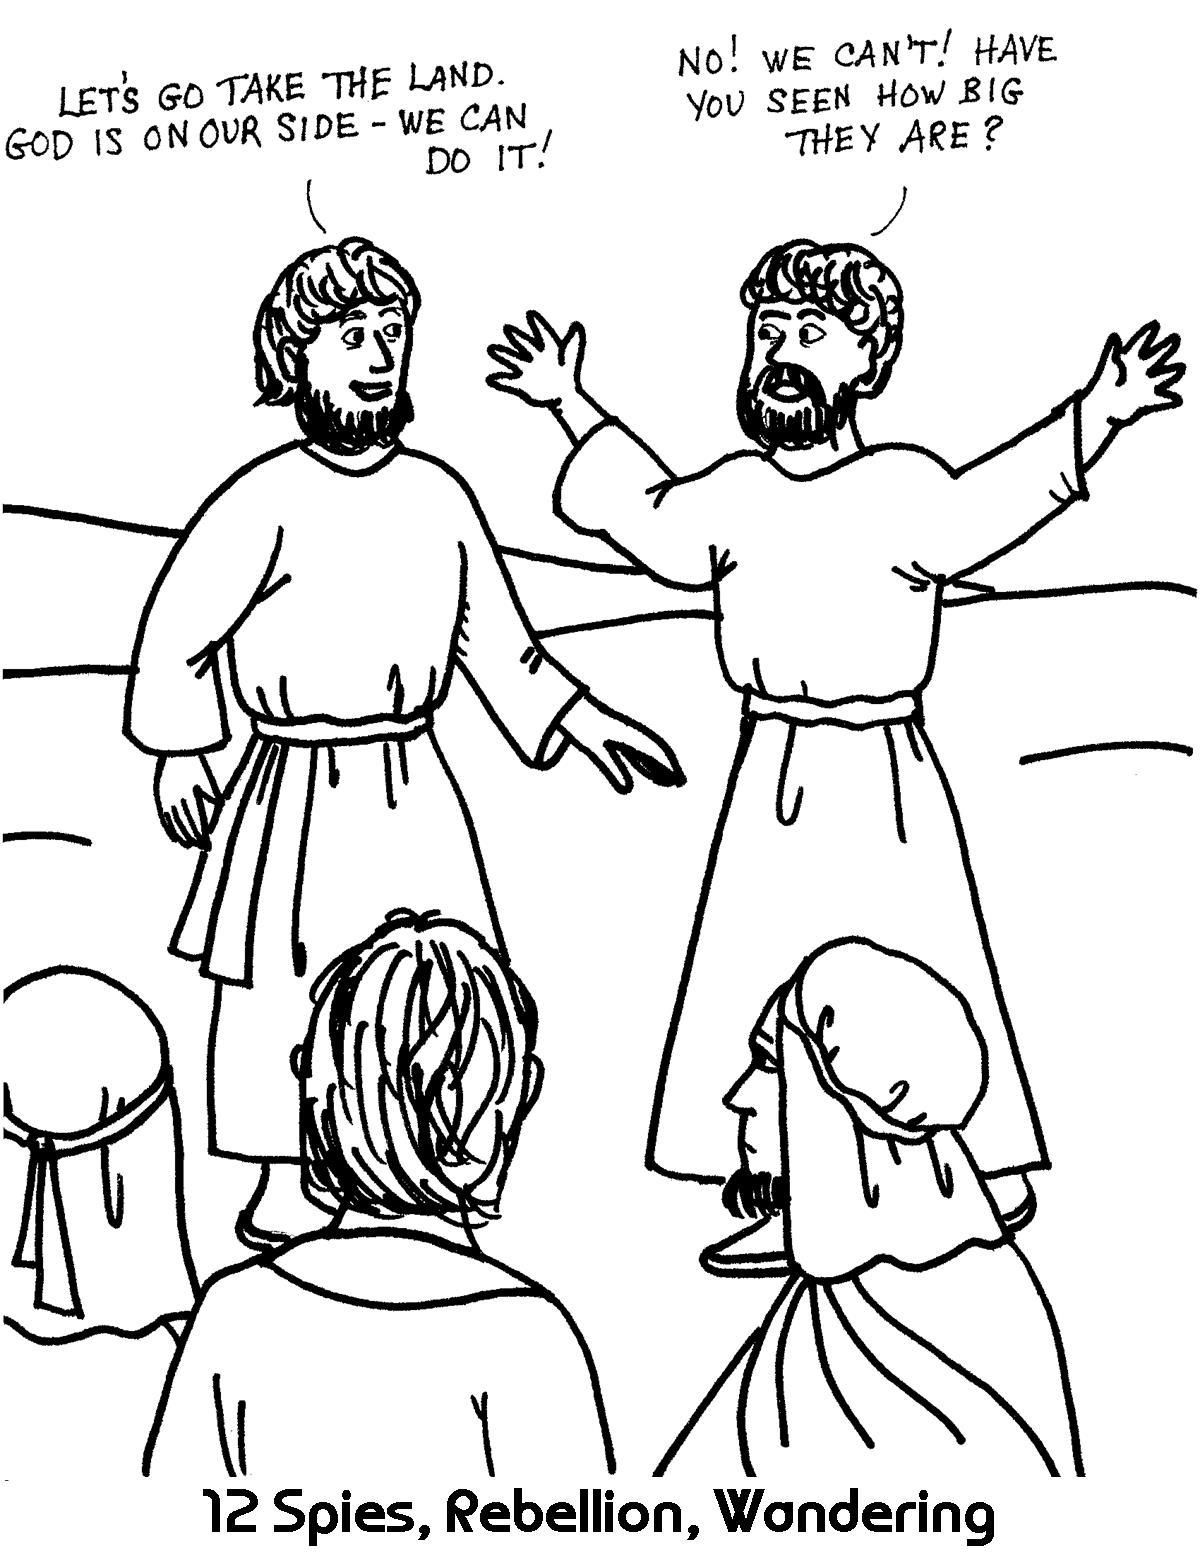 Bible Coloring Pages For Kids 100 Free Printables With Images